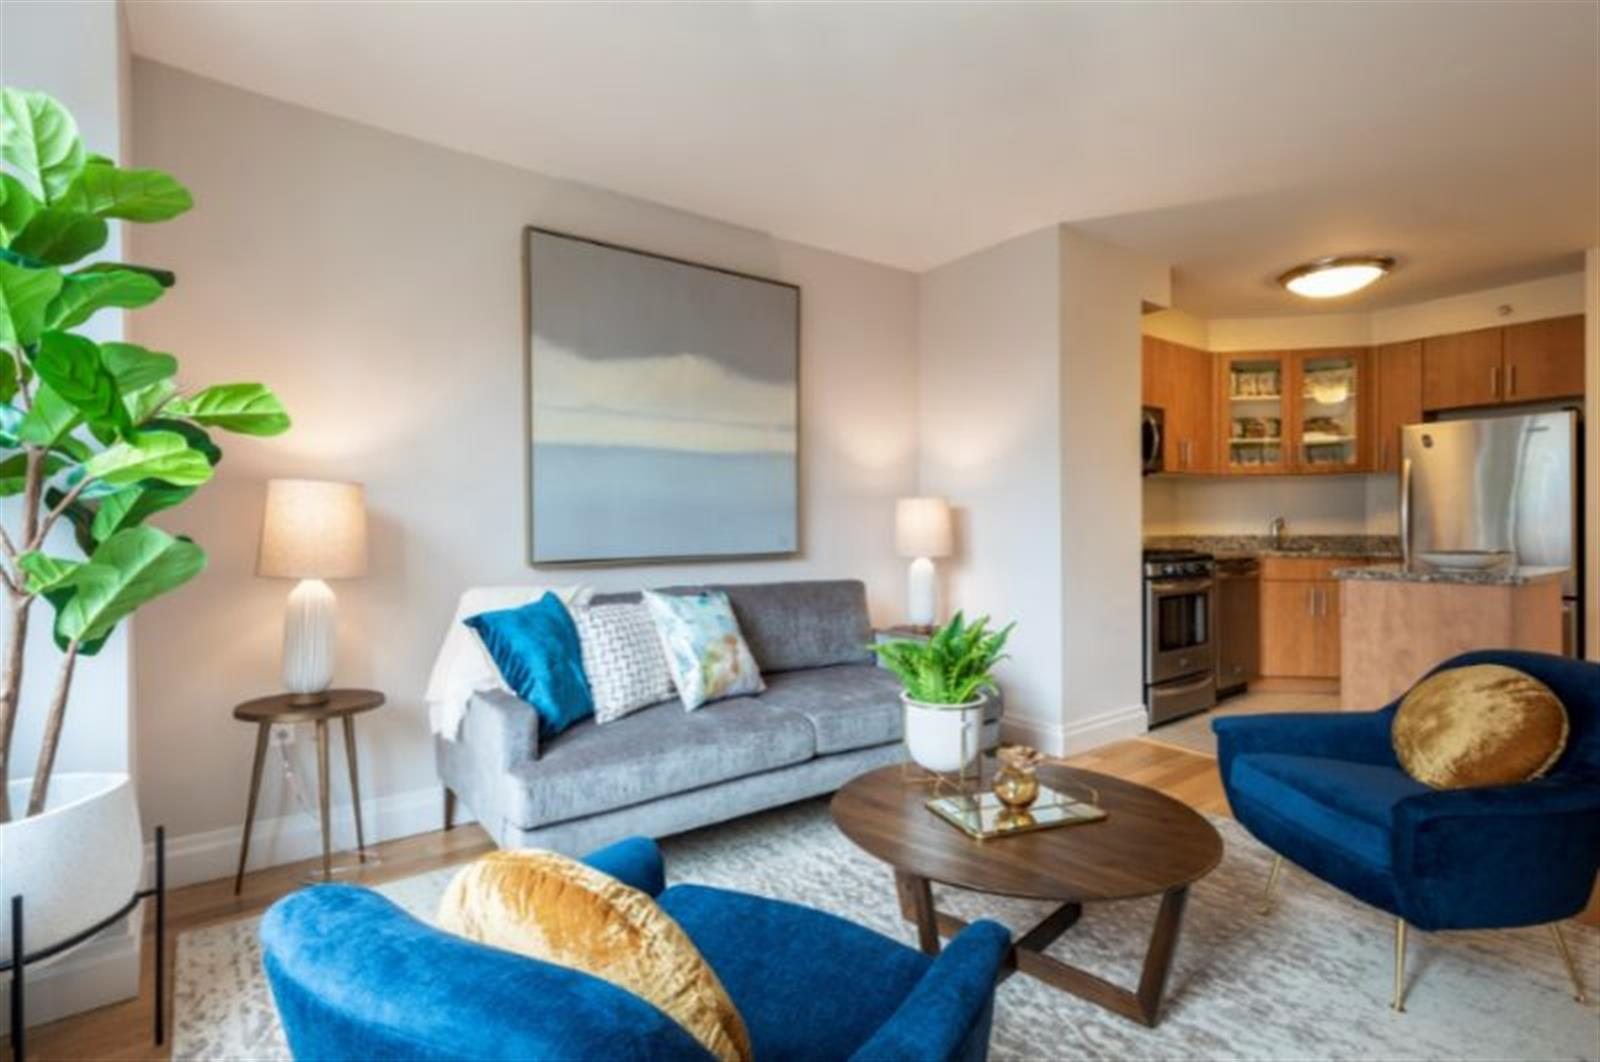 Grand 2 BD/2 BA home in NoMad